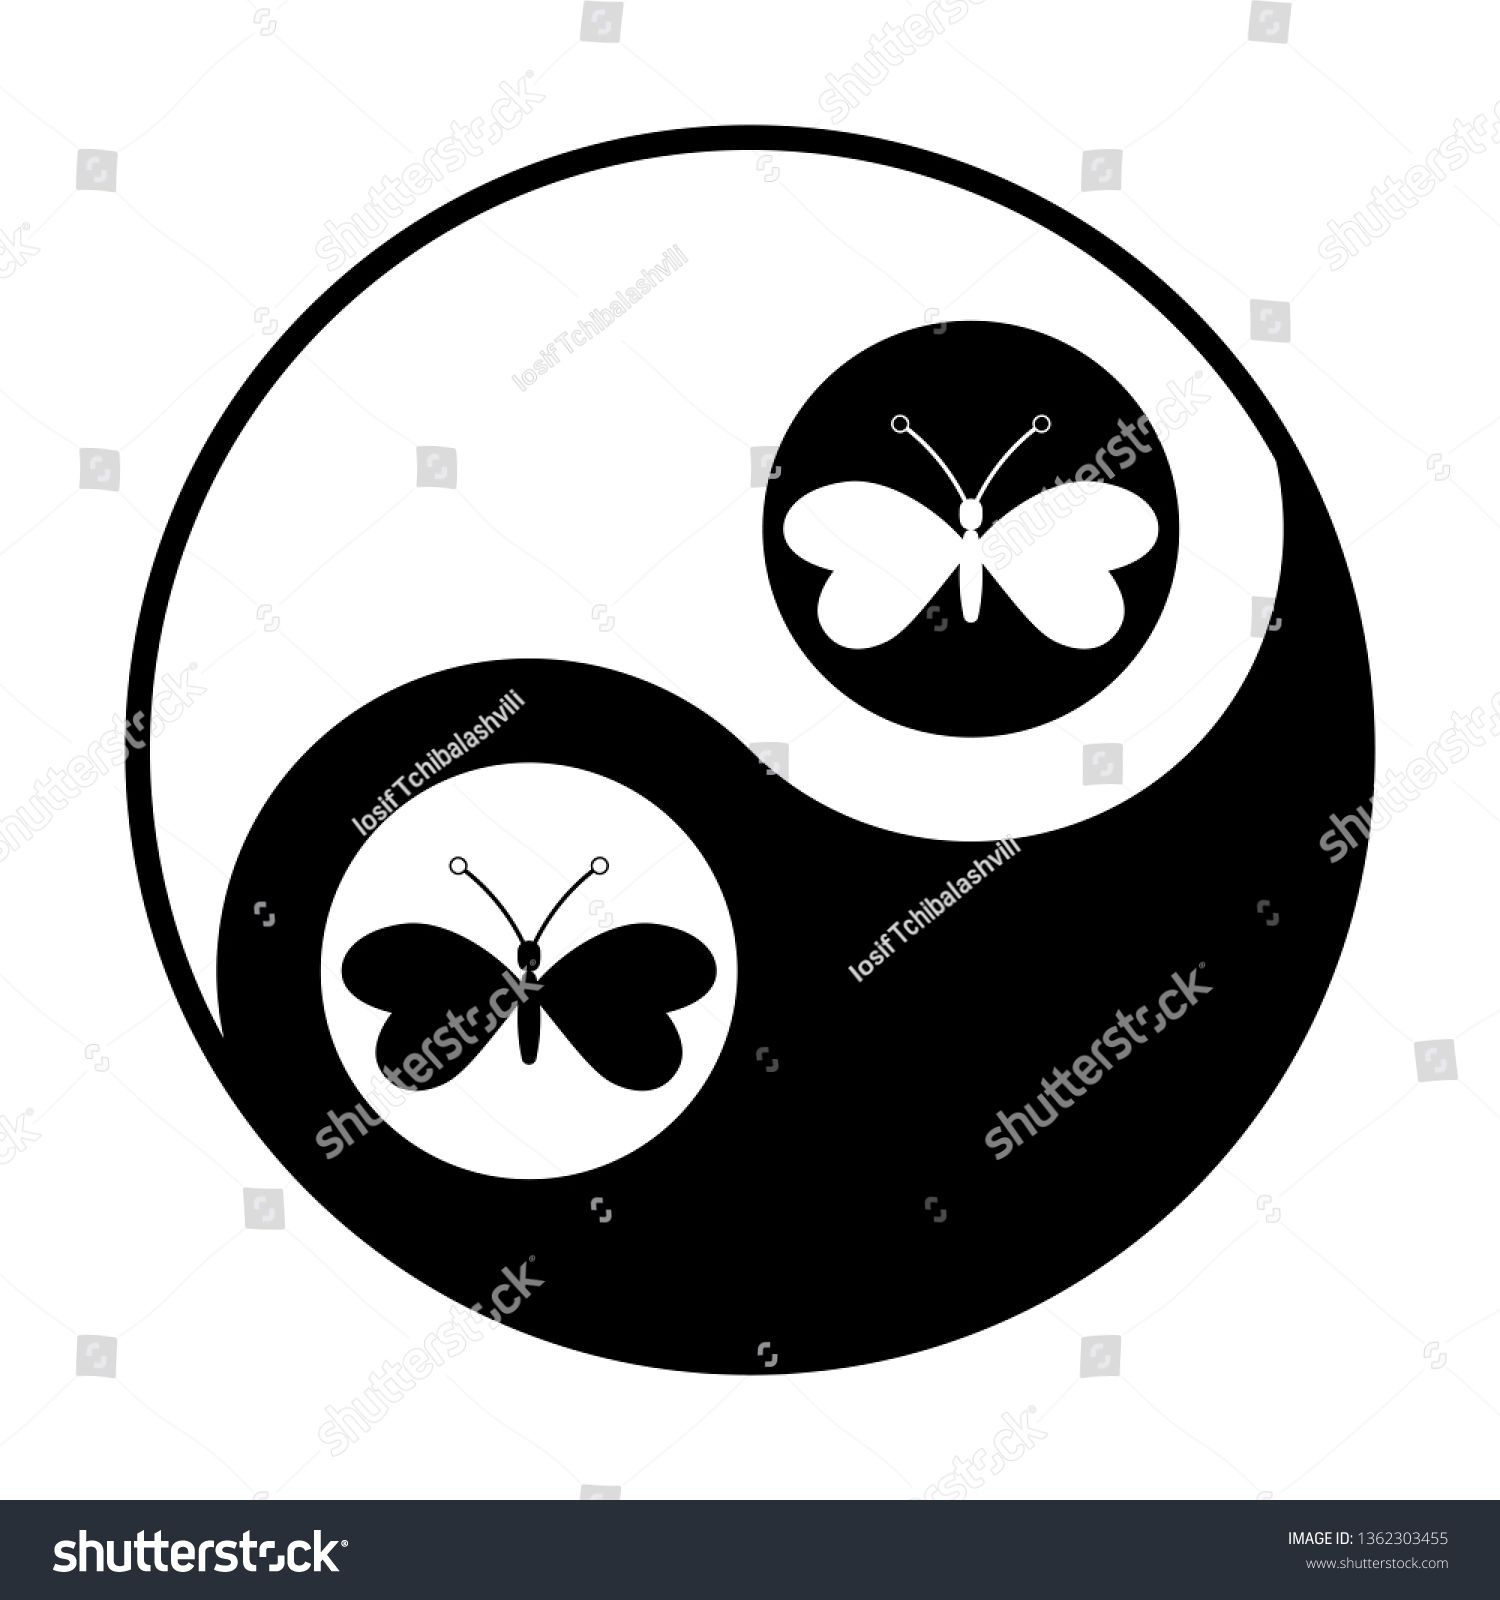 Butterfly Icon Vector Black And White Icon Inside Circles Of Yin And Yang Symbol At White Background Sponsored Butterflies Vector Black And White Symbols